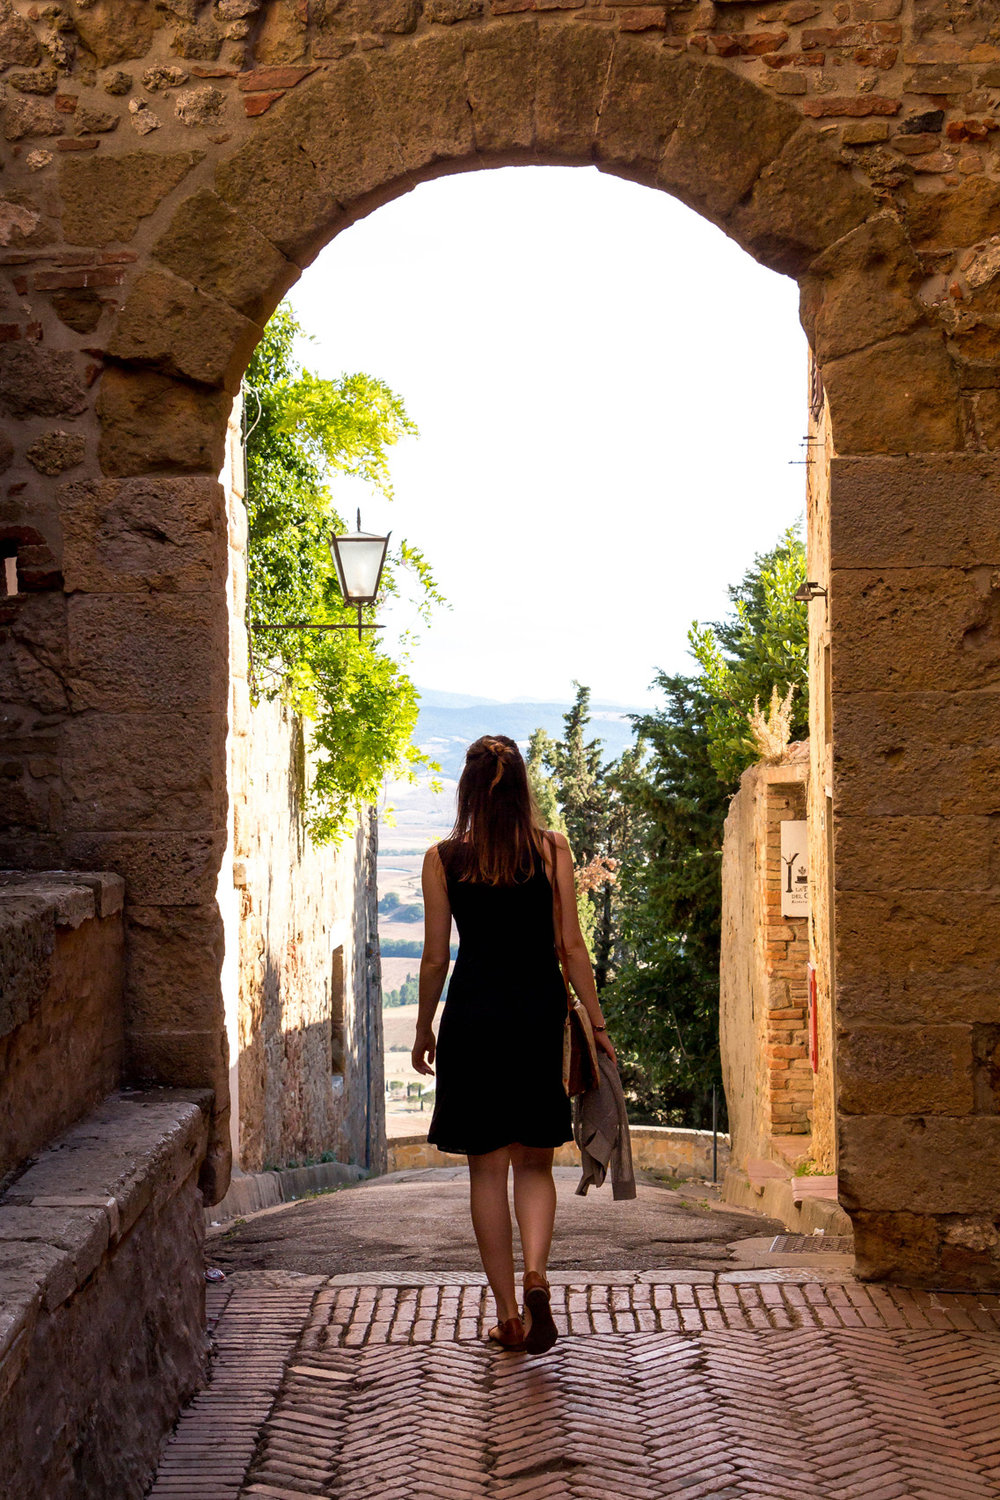 Walking the streets of Pienza, Tuscany